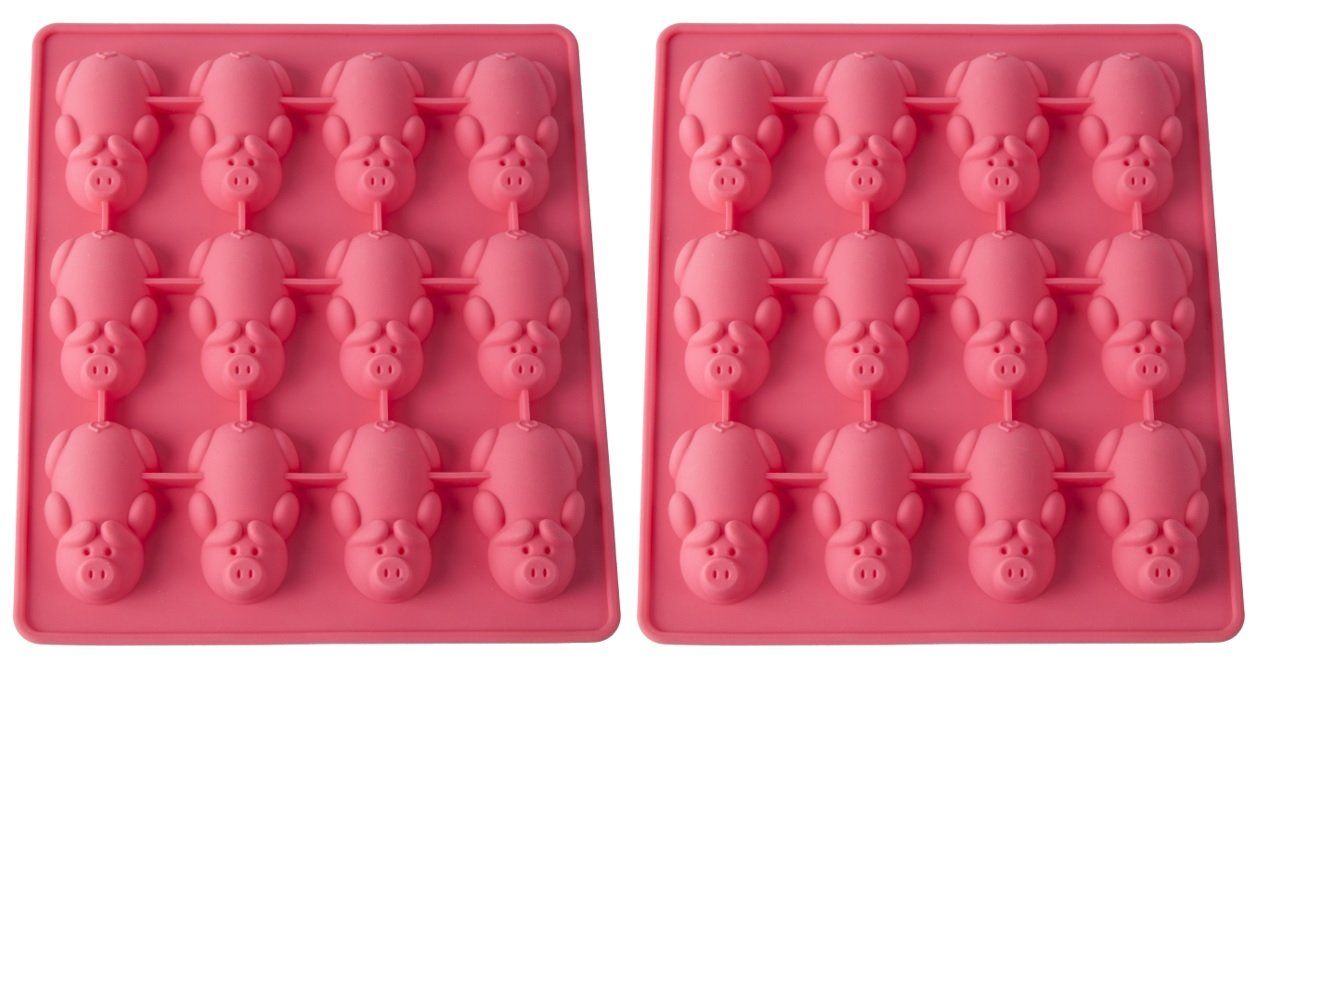 Mobi 12 Little Pigs in a Blanket Silicone Baking Mold, Pink, Set of 2